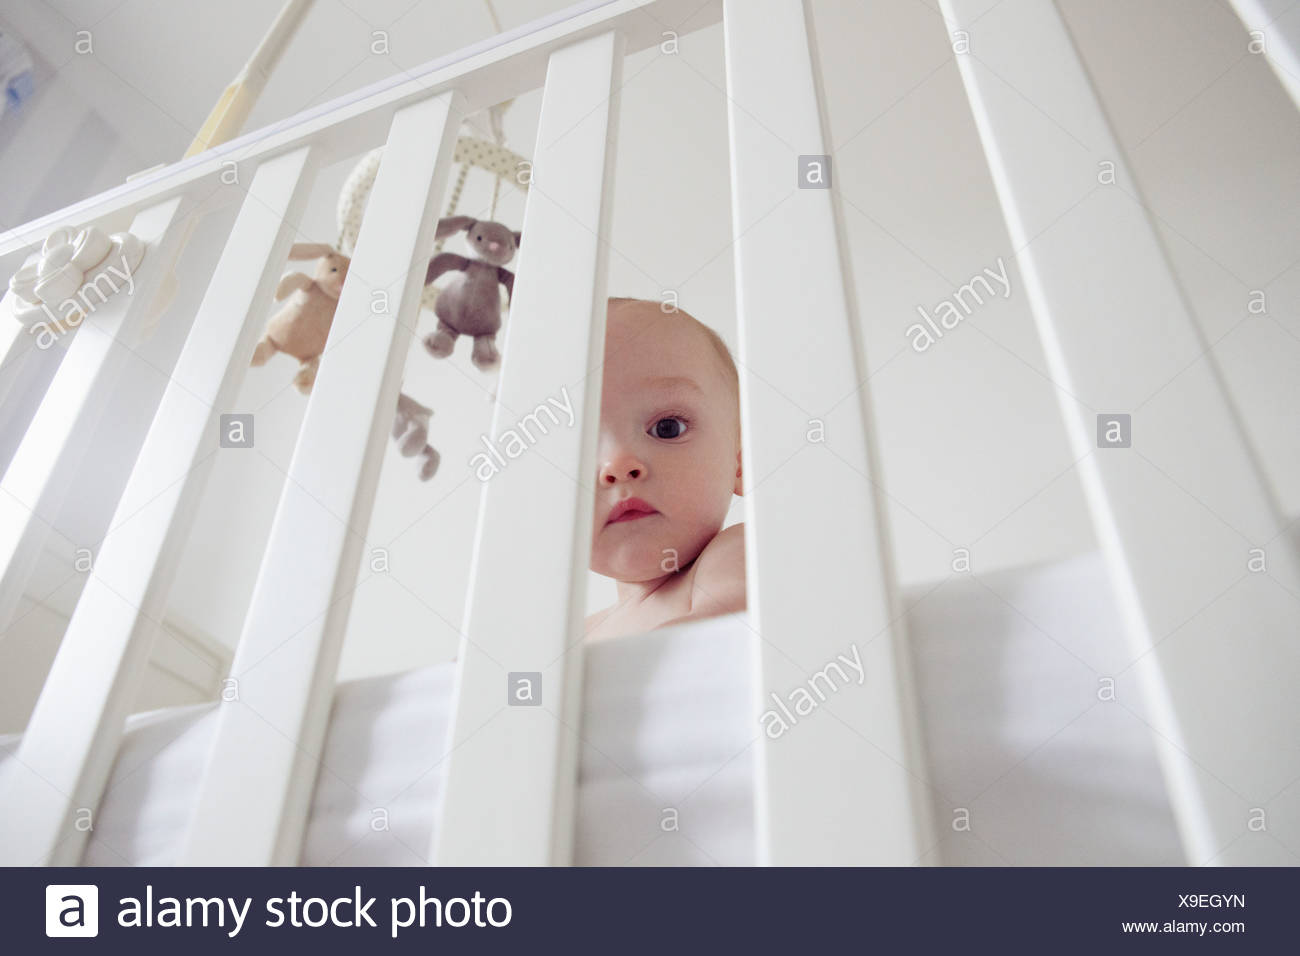 Baby boy behind bars of crib - Stock Image